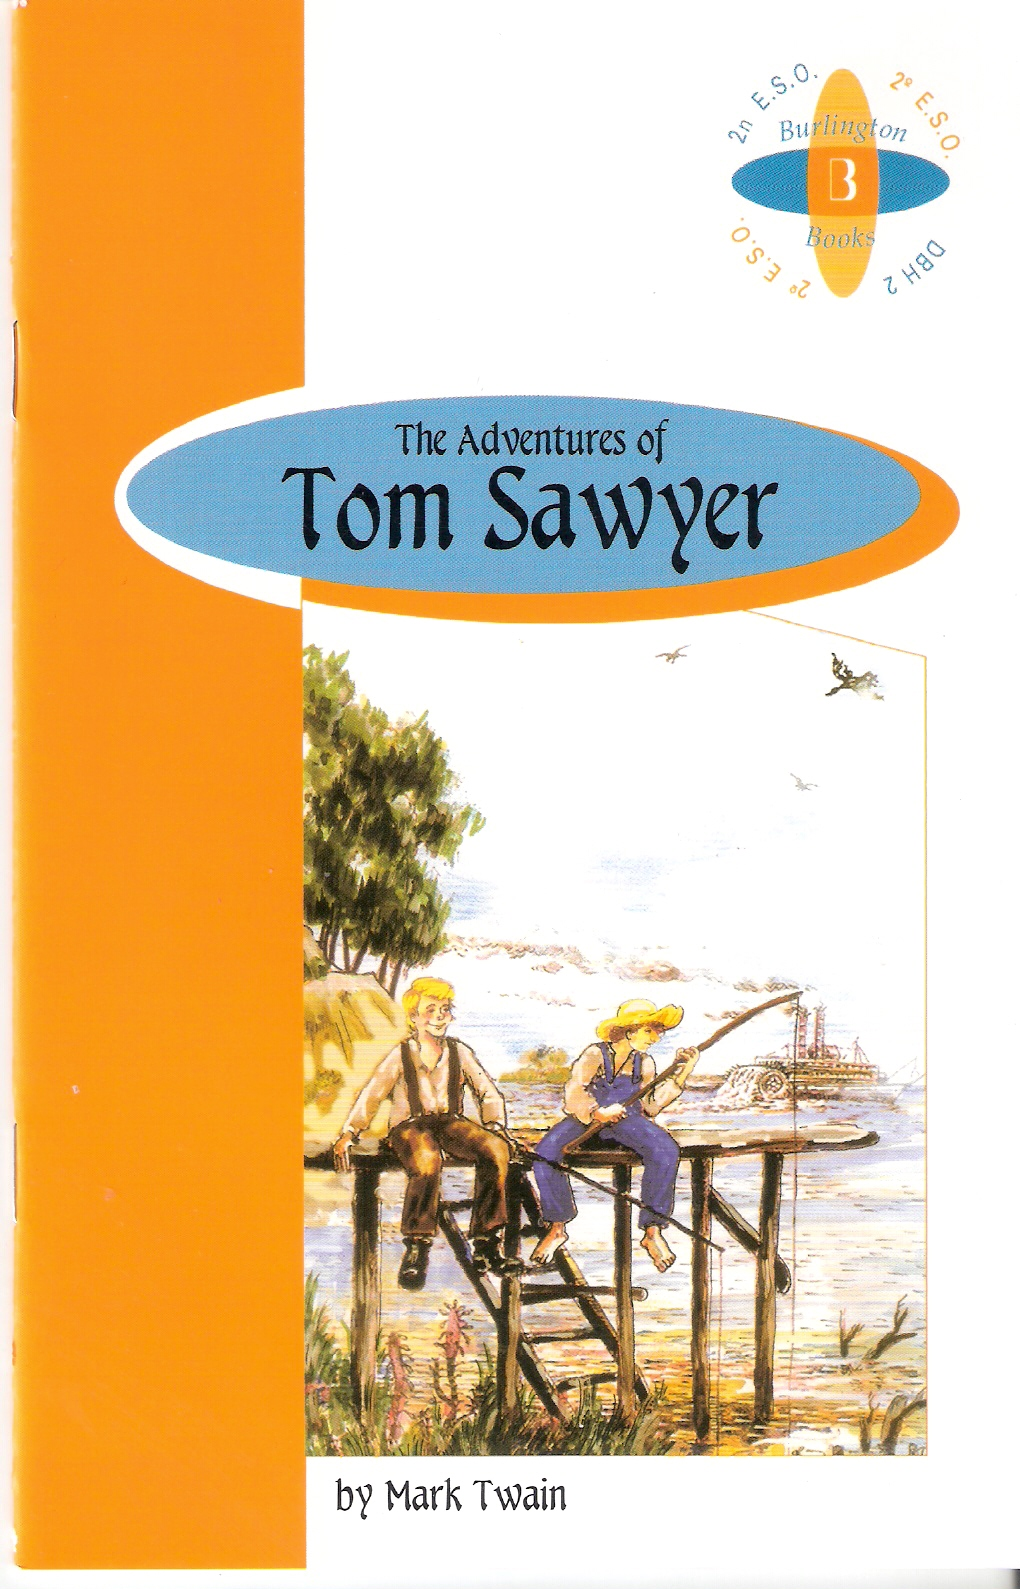 a summary of adventures of tom sawyer The adventures of tom sawyer summary tom sawyer is one of those special stories and pieces of literature that can easily get the reader engaged with it you may get involved with such a unique story about the brave and exceptionally smart tom sawyer who was also known for being a great friend of course.